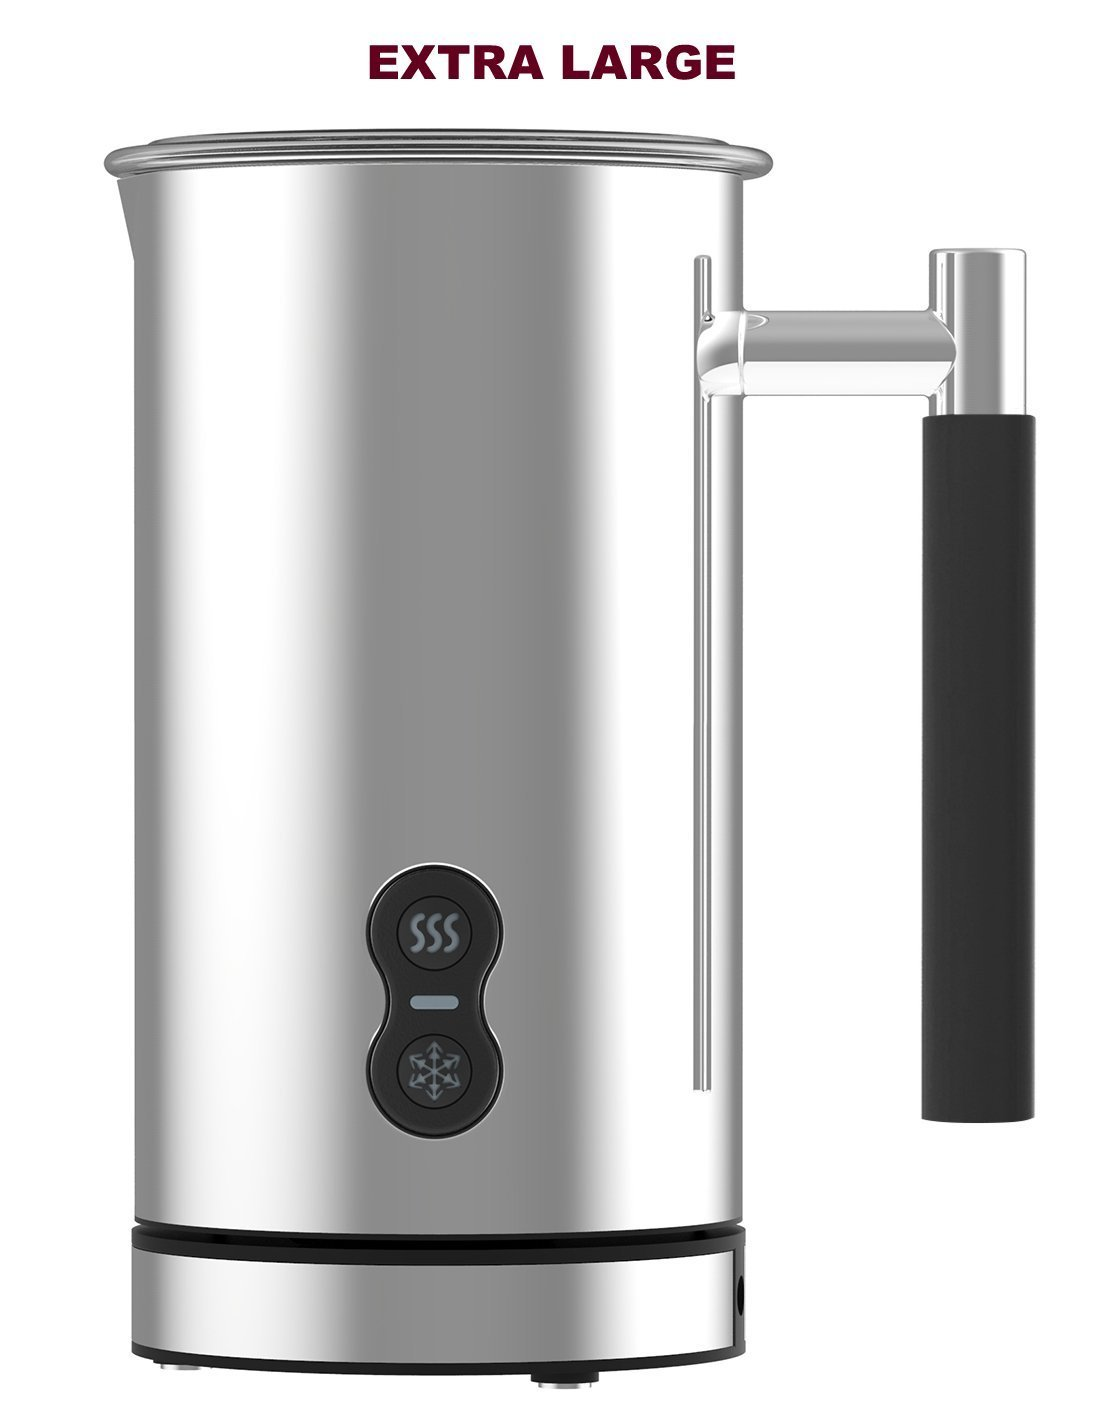 CAFE CASA Premium EXTRA LARGE Stainless Steel Electric Milk Frother: Dual Function - Foams milk and also can warm milk for Lattes and Cappuccinos